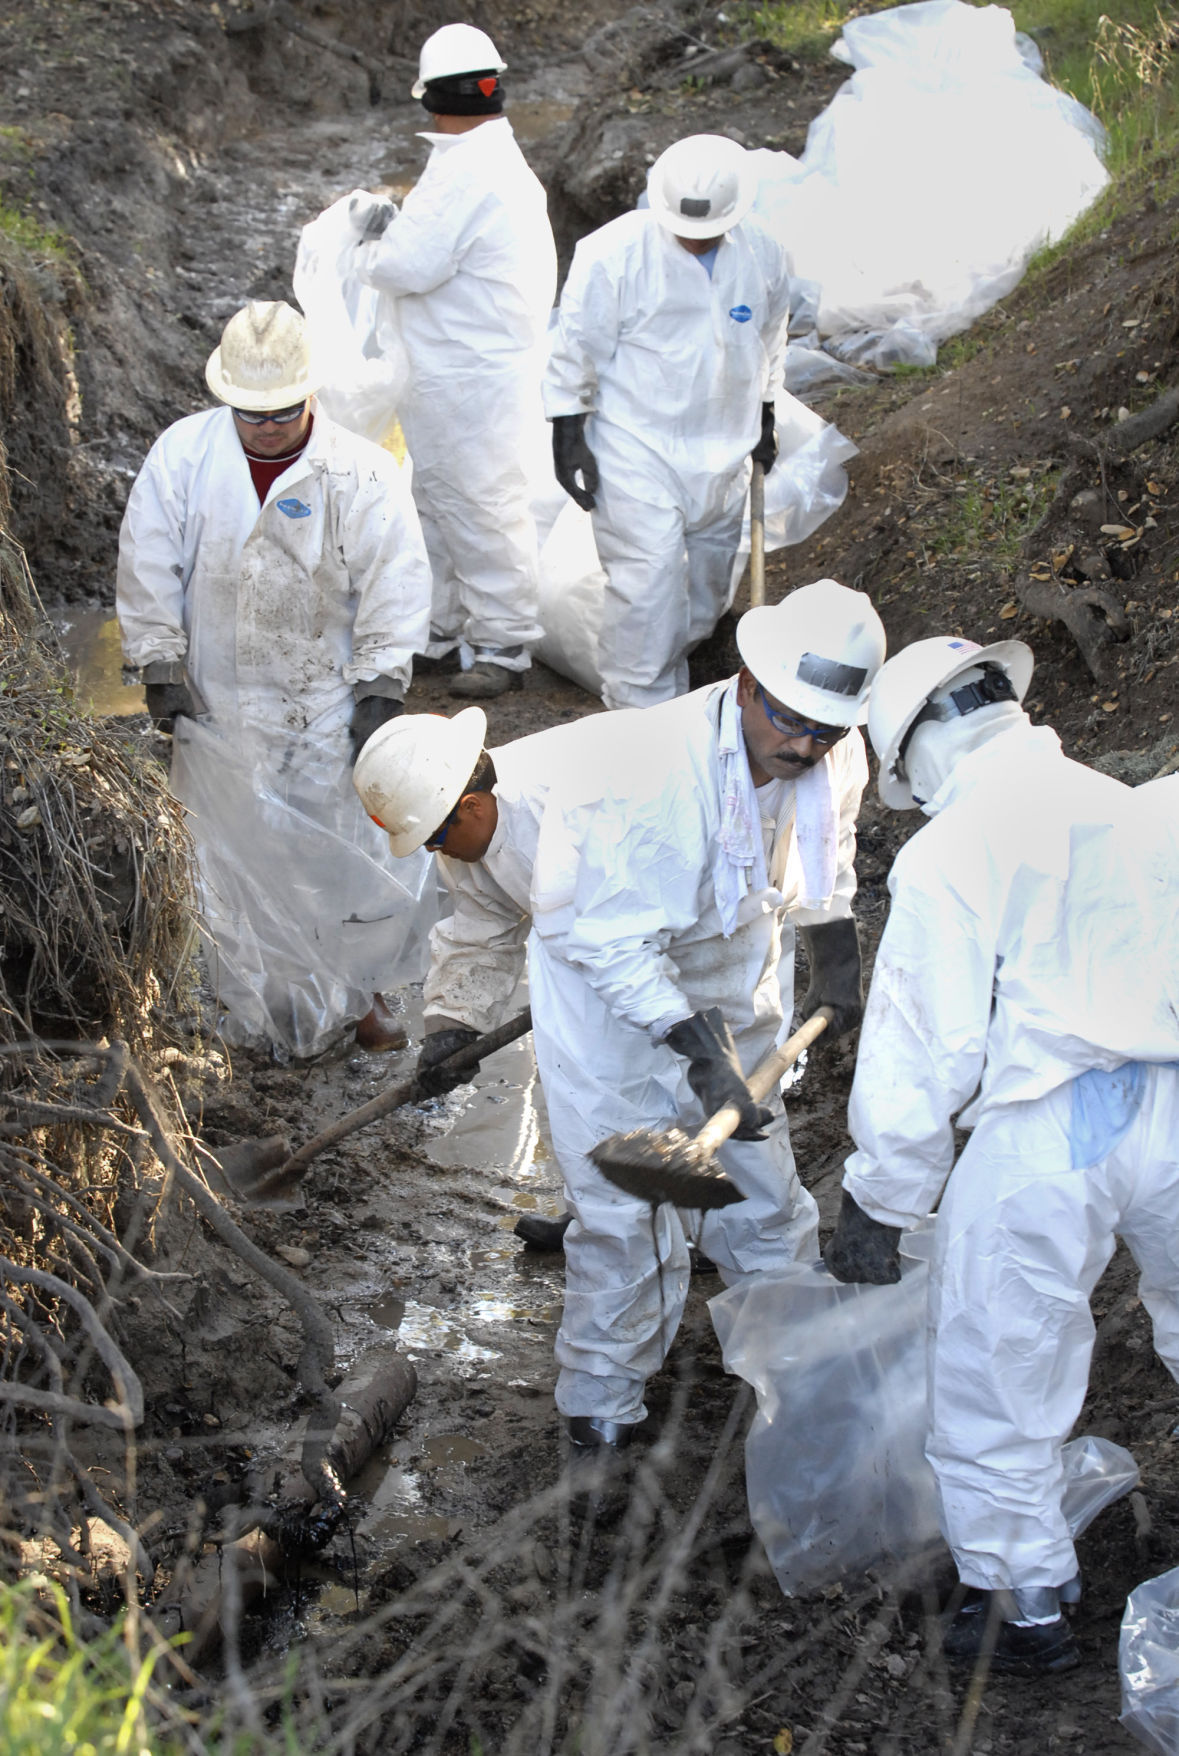 Cleanup of 2008 spill